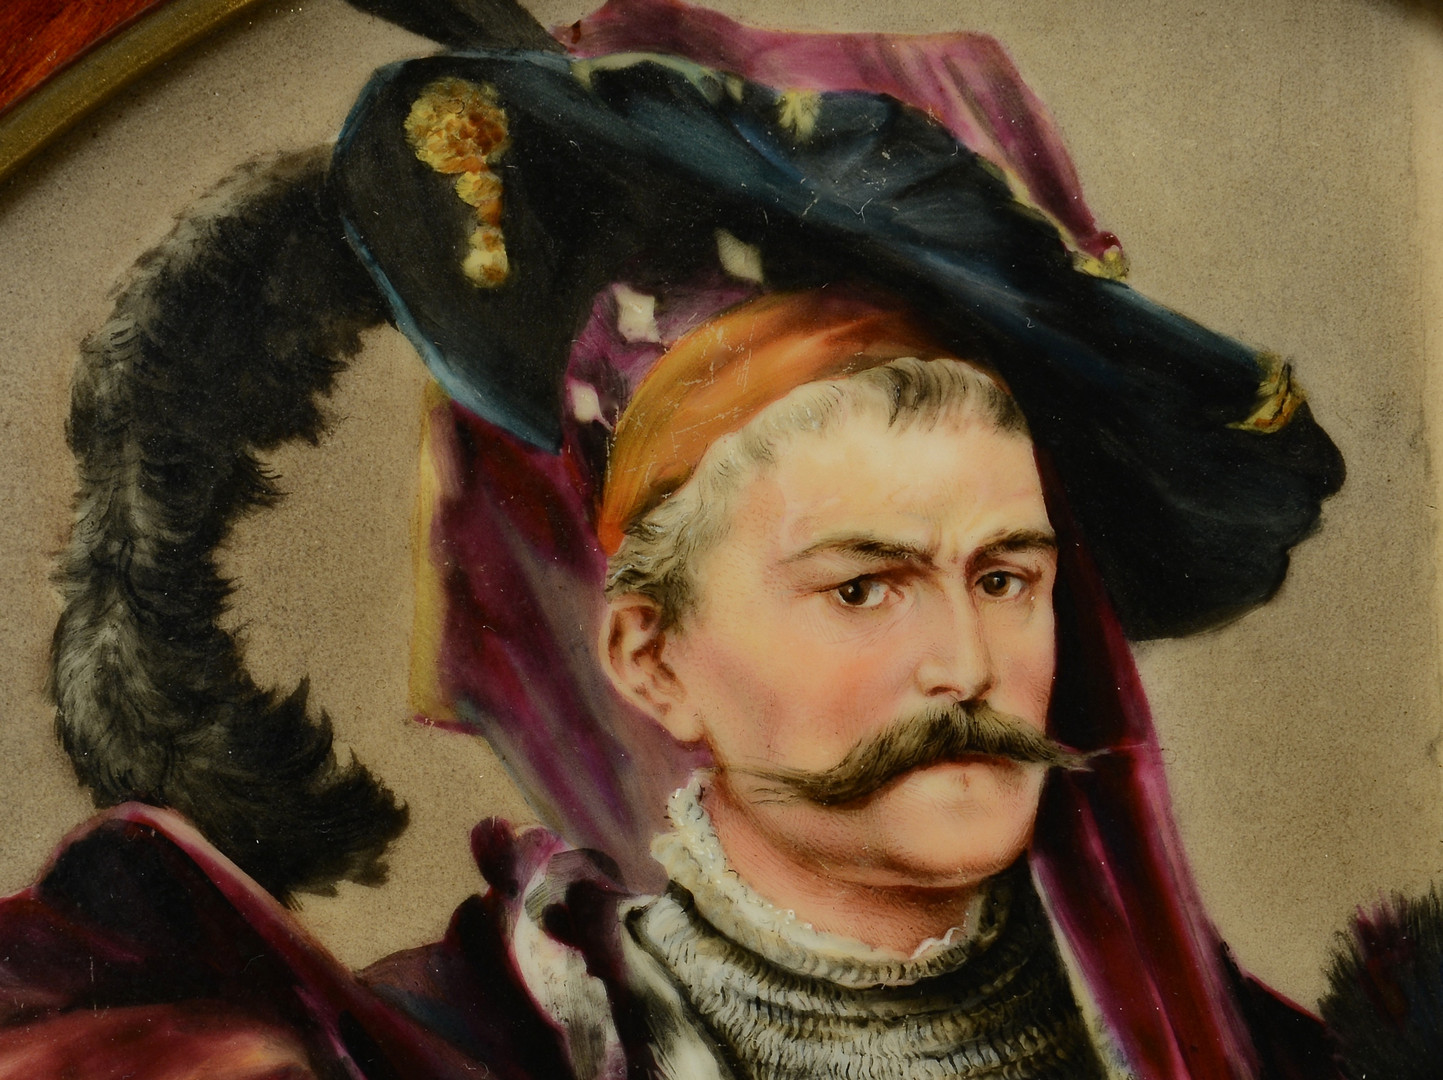 Lot 332: Porcelain Plaque, Man with Armor